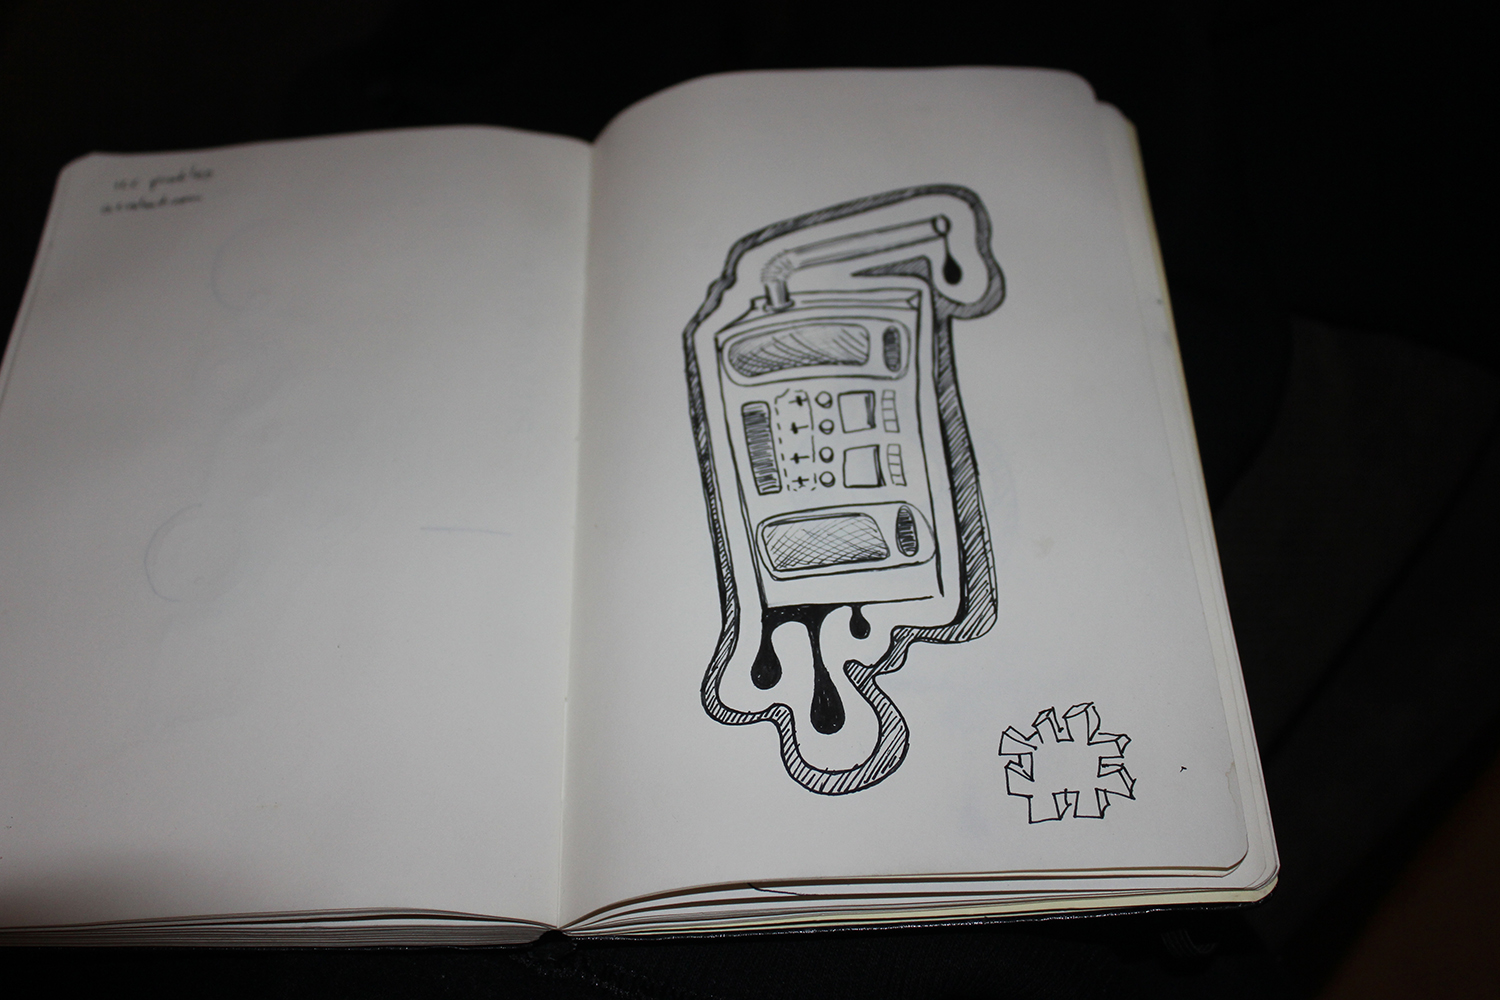 Juicebox boombox notebook sketch